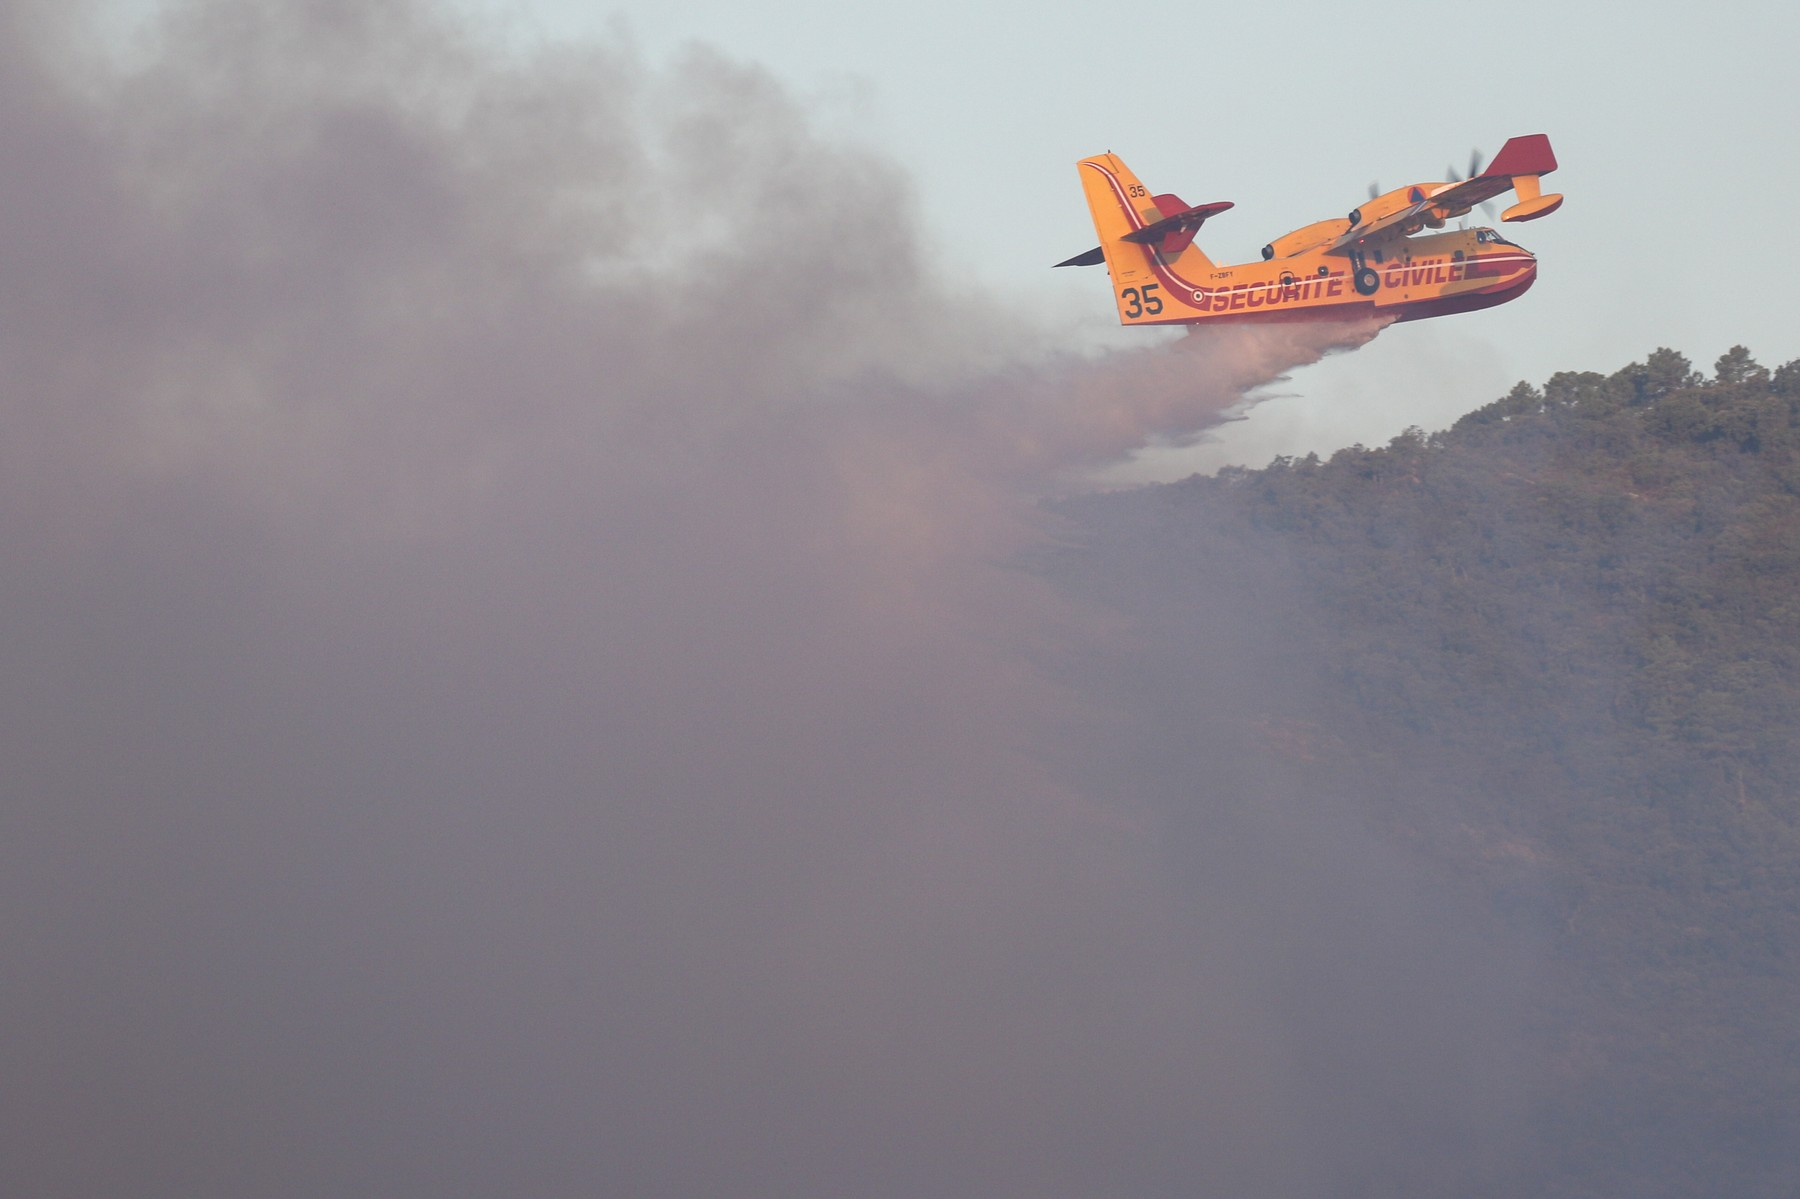 Monster Forest Fire In The Var - Aftermath